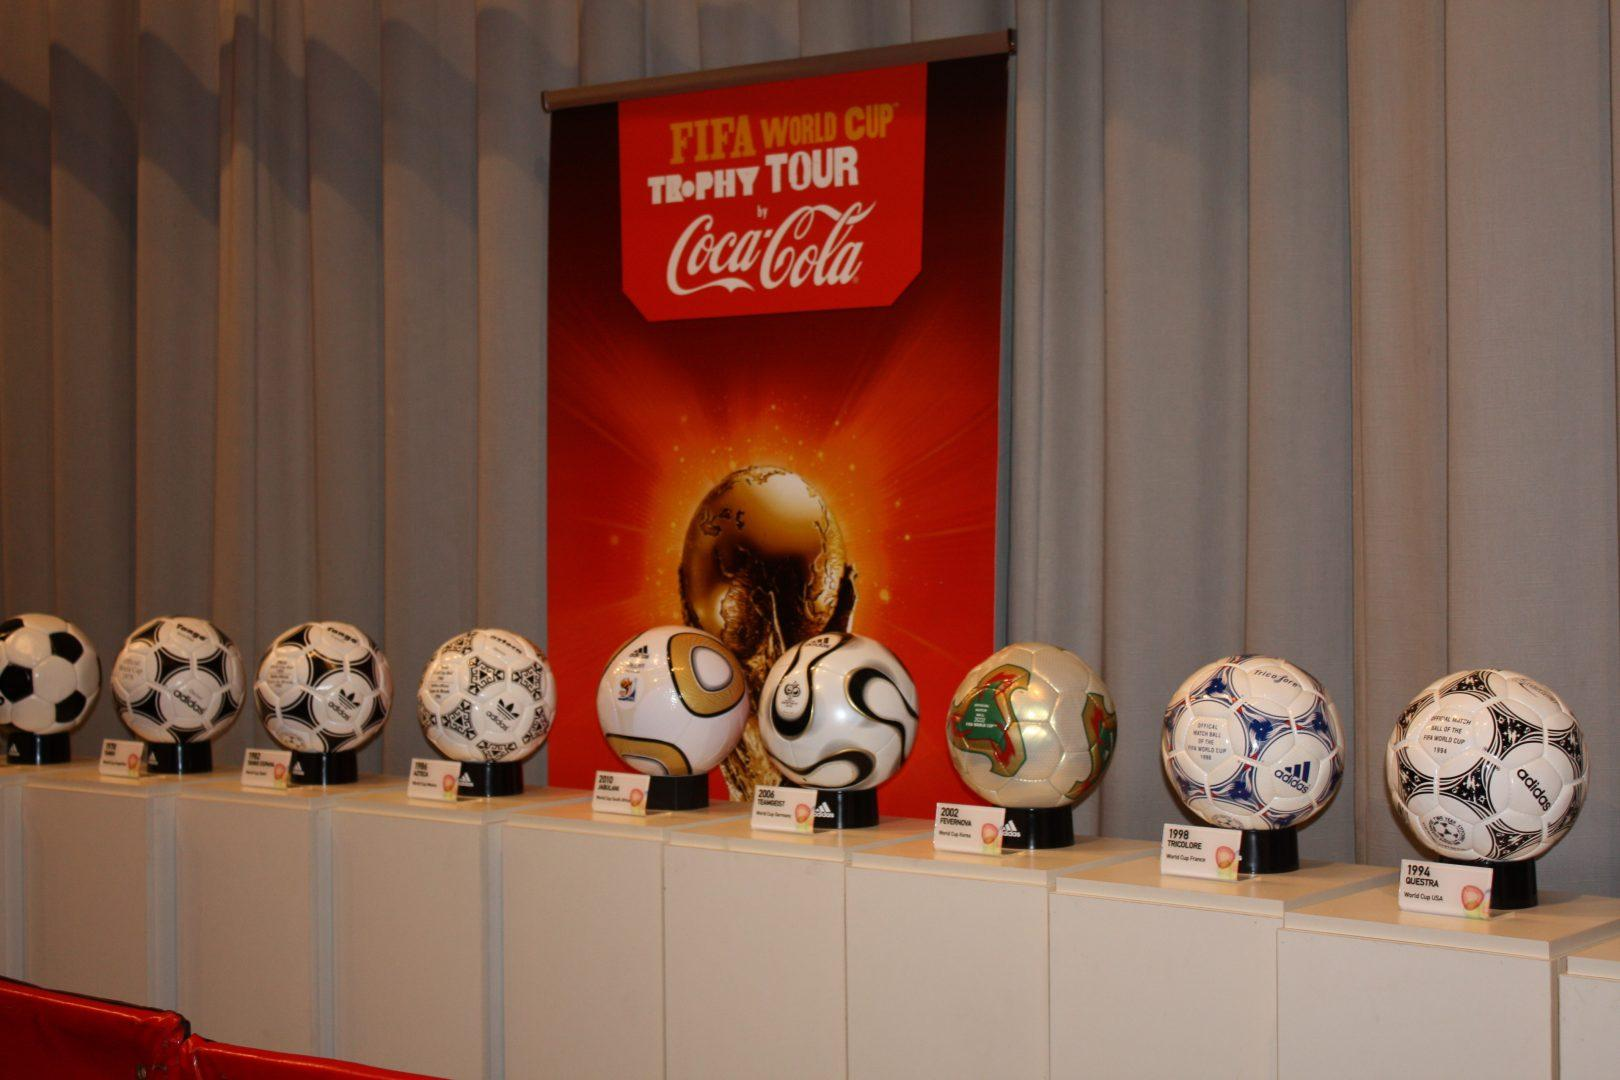 Spain, Germany, Brazil and Argentina are some favorites to win this year's FIFA World Cup.  (Courtesy coca cola south africa via flickr)